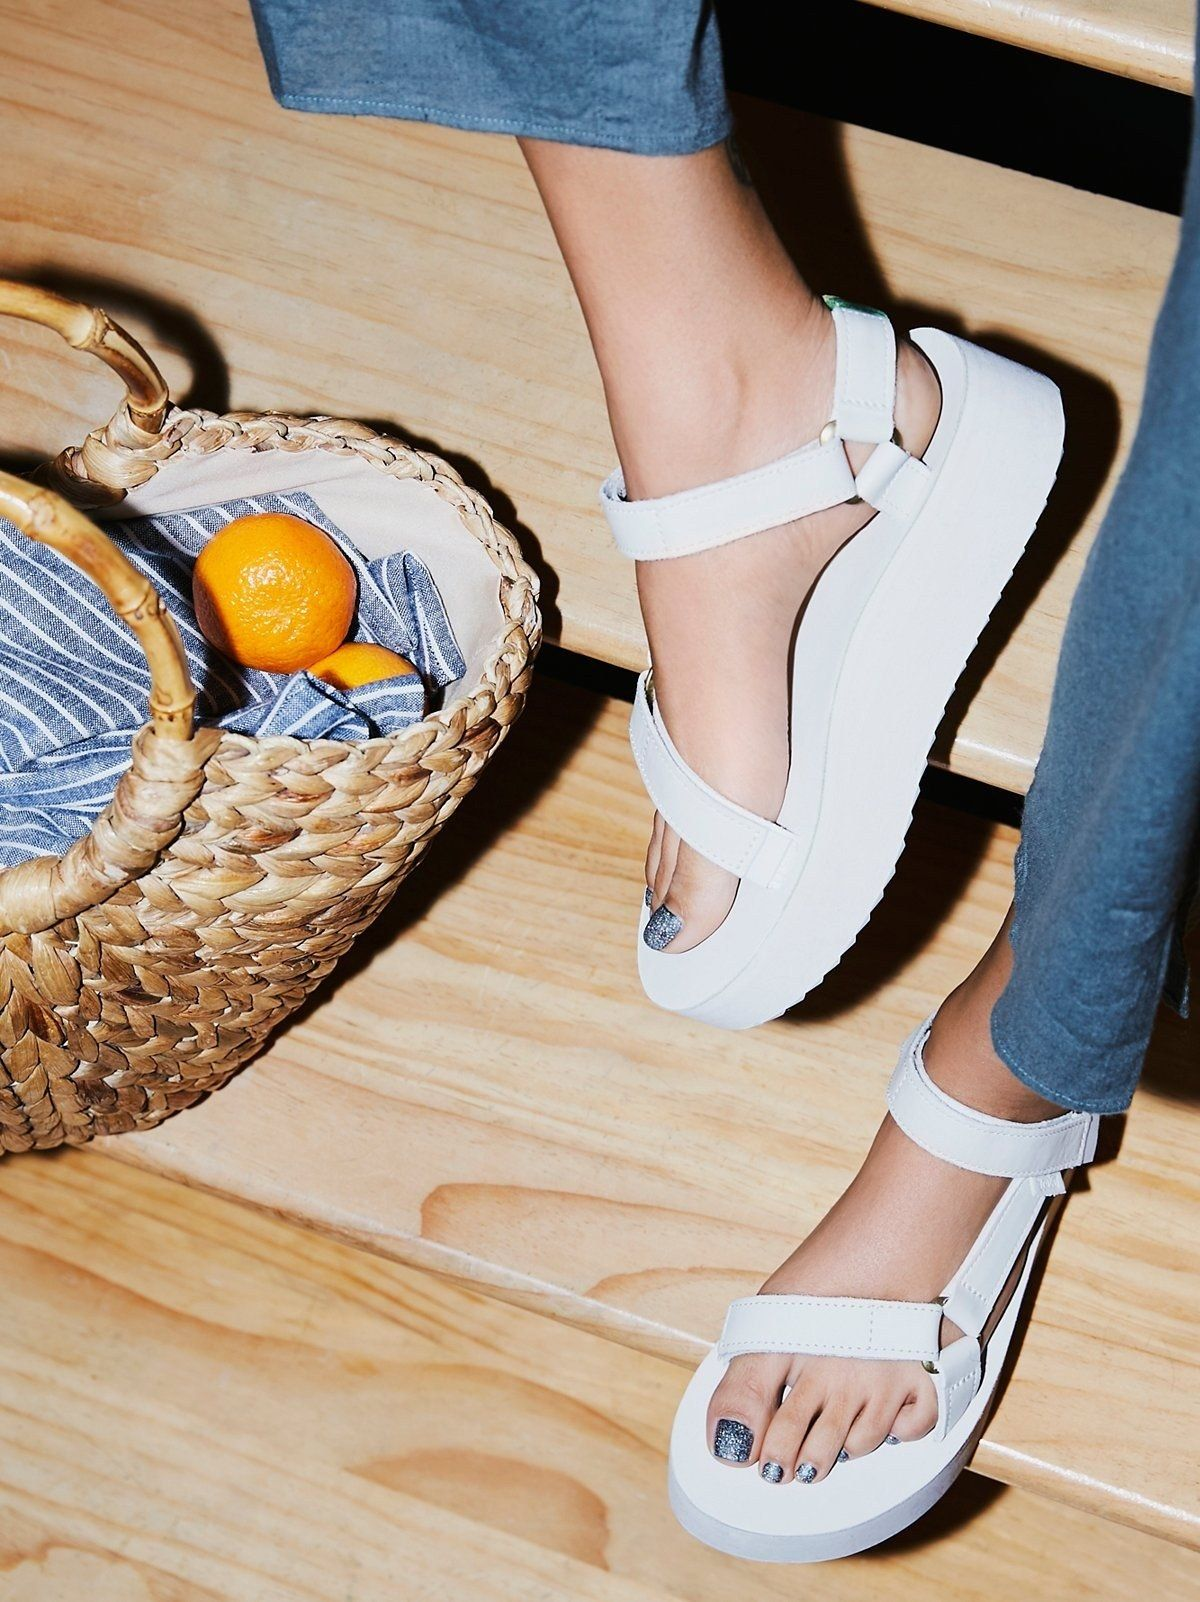 The Most Comfortable Walking Sandals